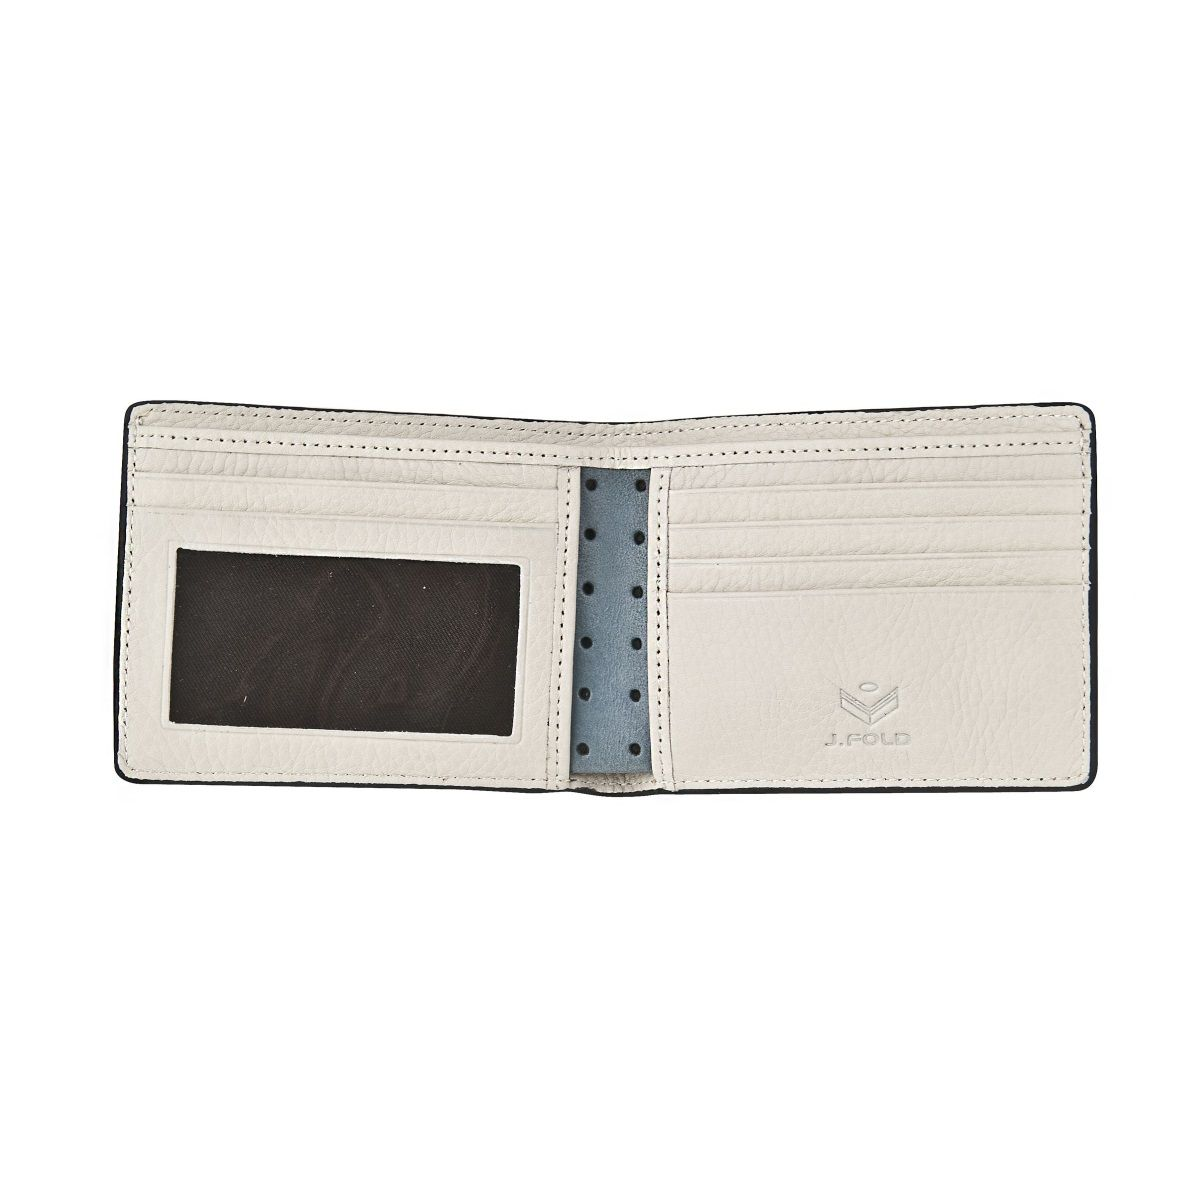 J.FOLD Loungemaster Leather Wallet  - Grey